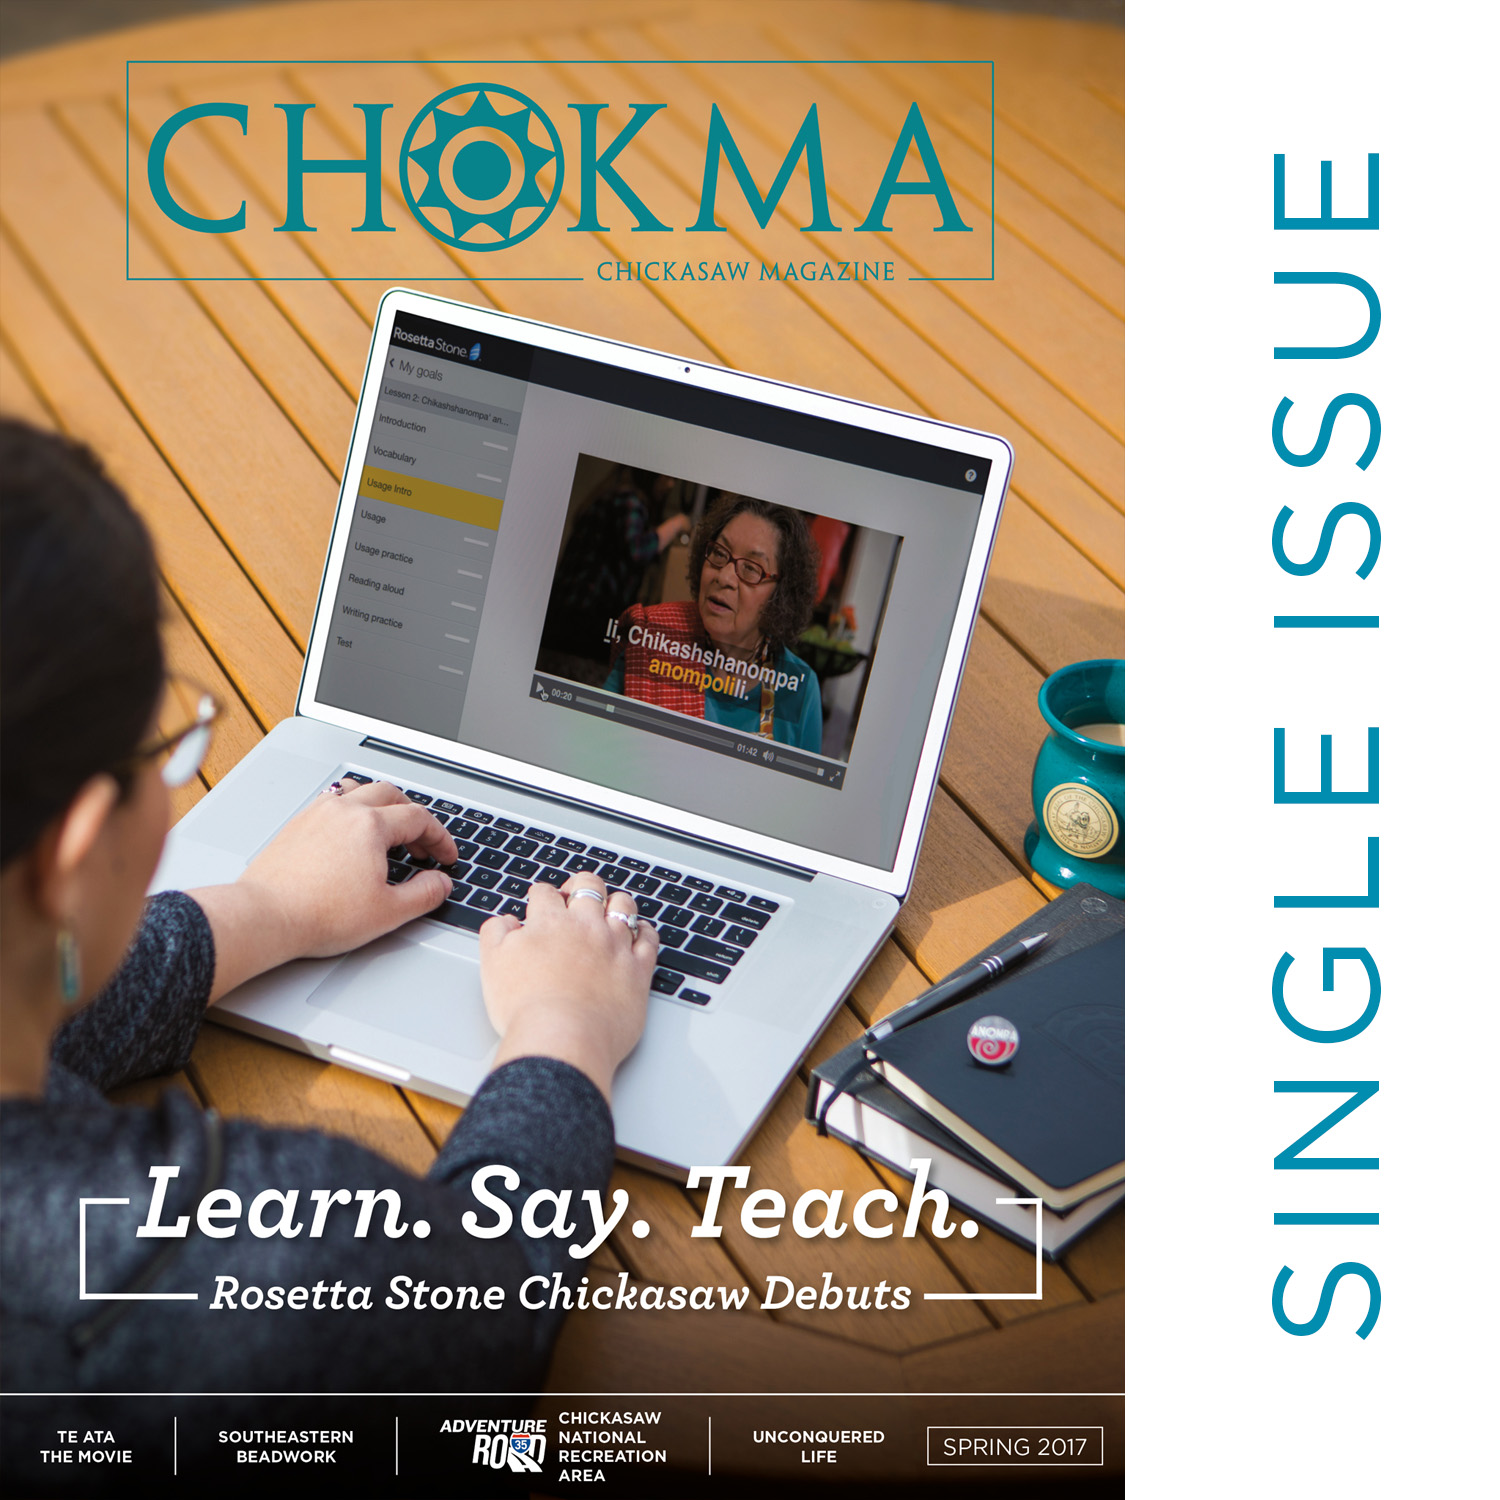 Chokma Magazine - Spring 2017 Issue